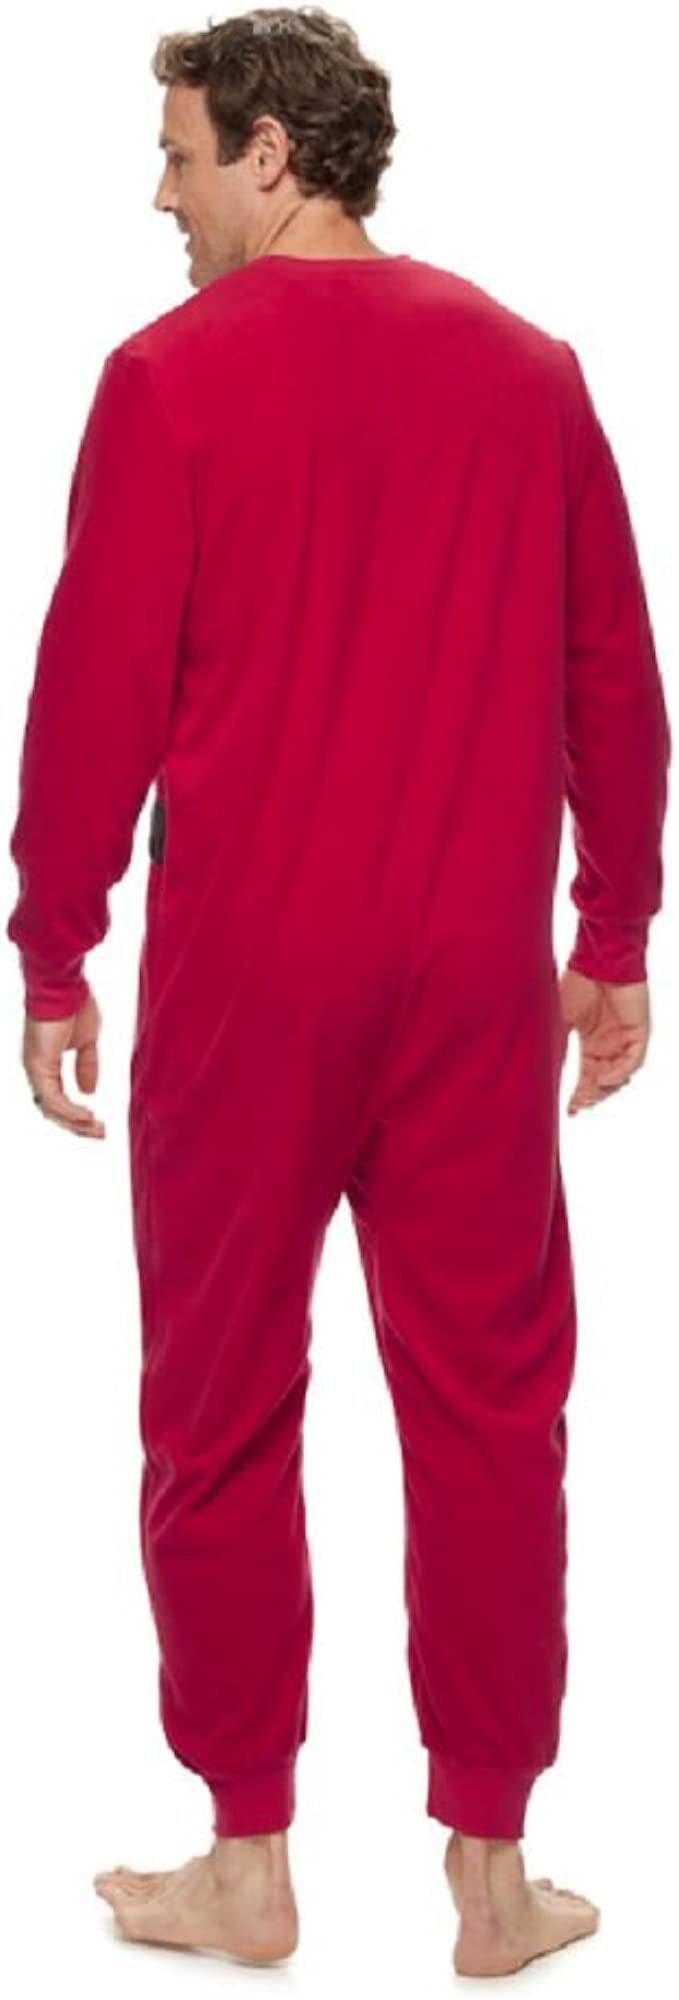 Only Faith Mens Long Sleeve Thickening Coral Fleece Pajamas Homewear Suit